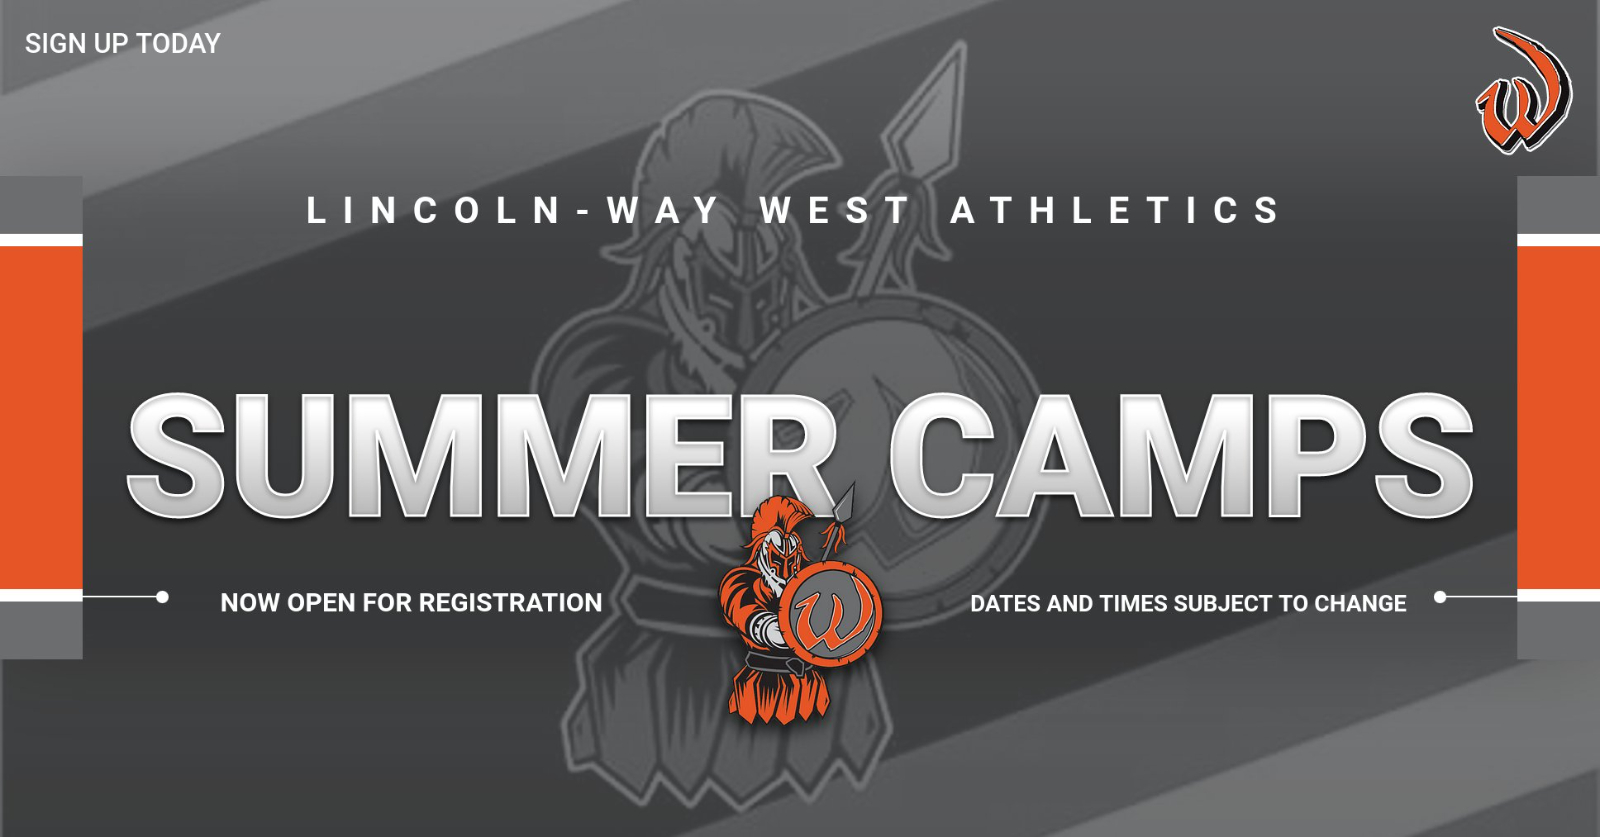 2021 Summer Camps Are Now Open For Registration